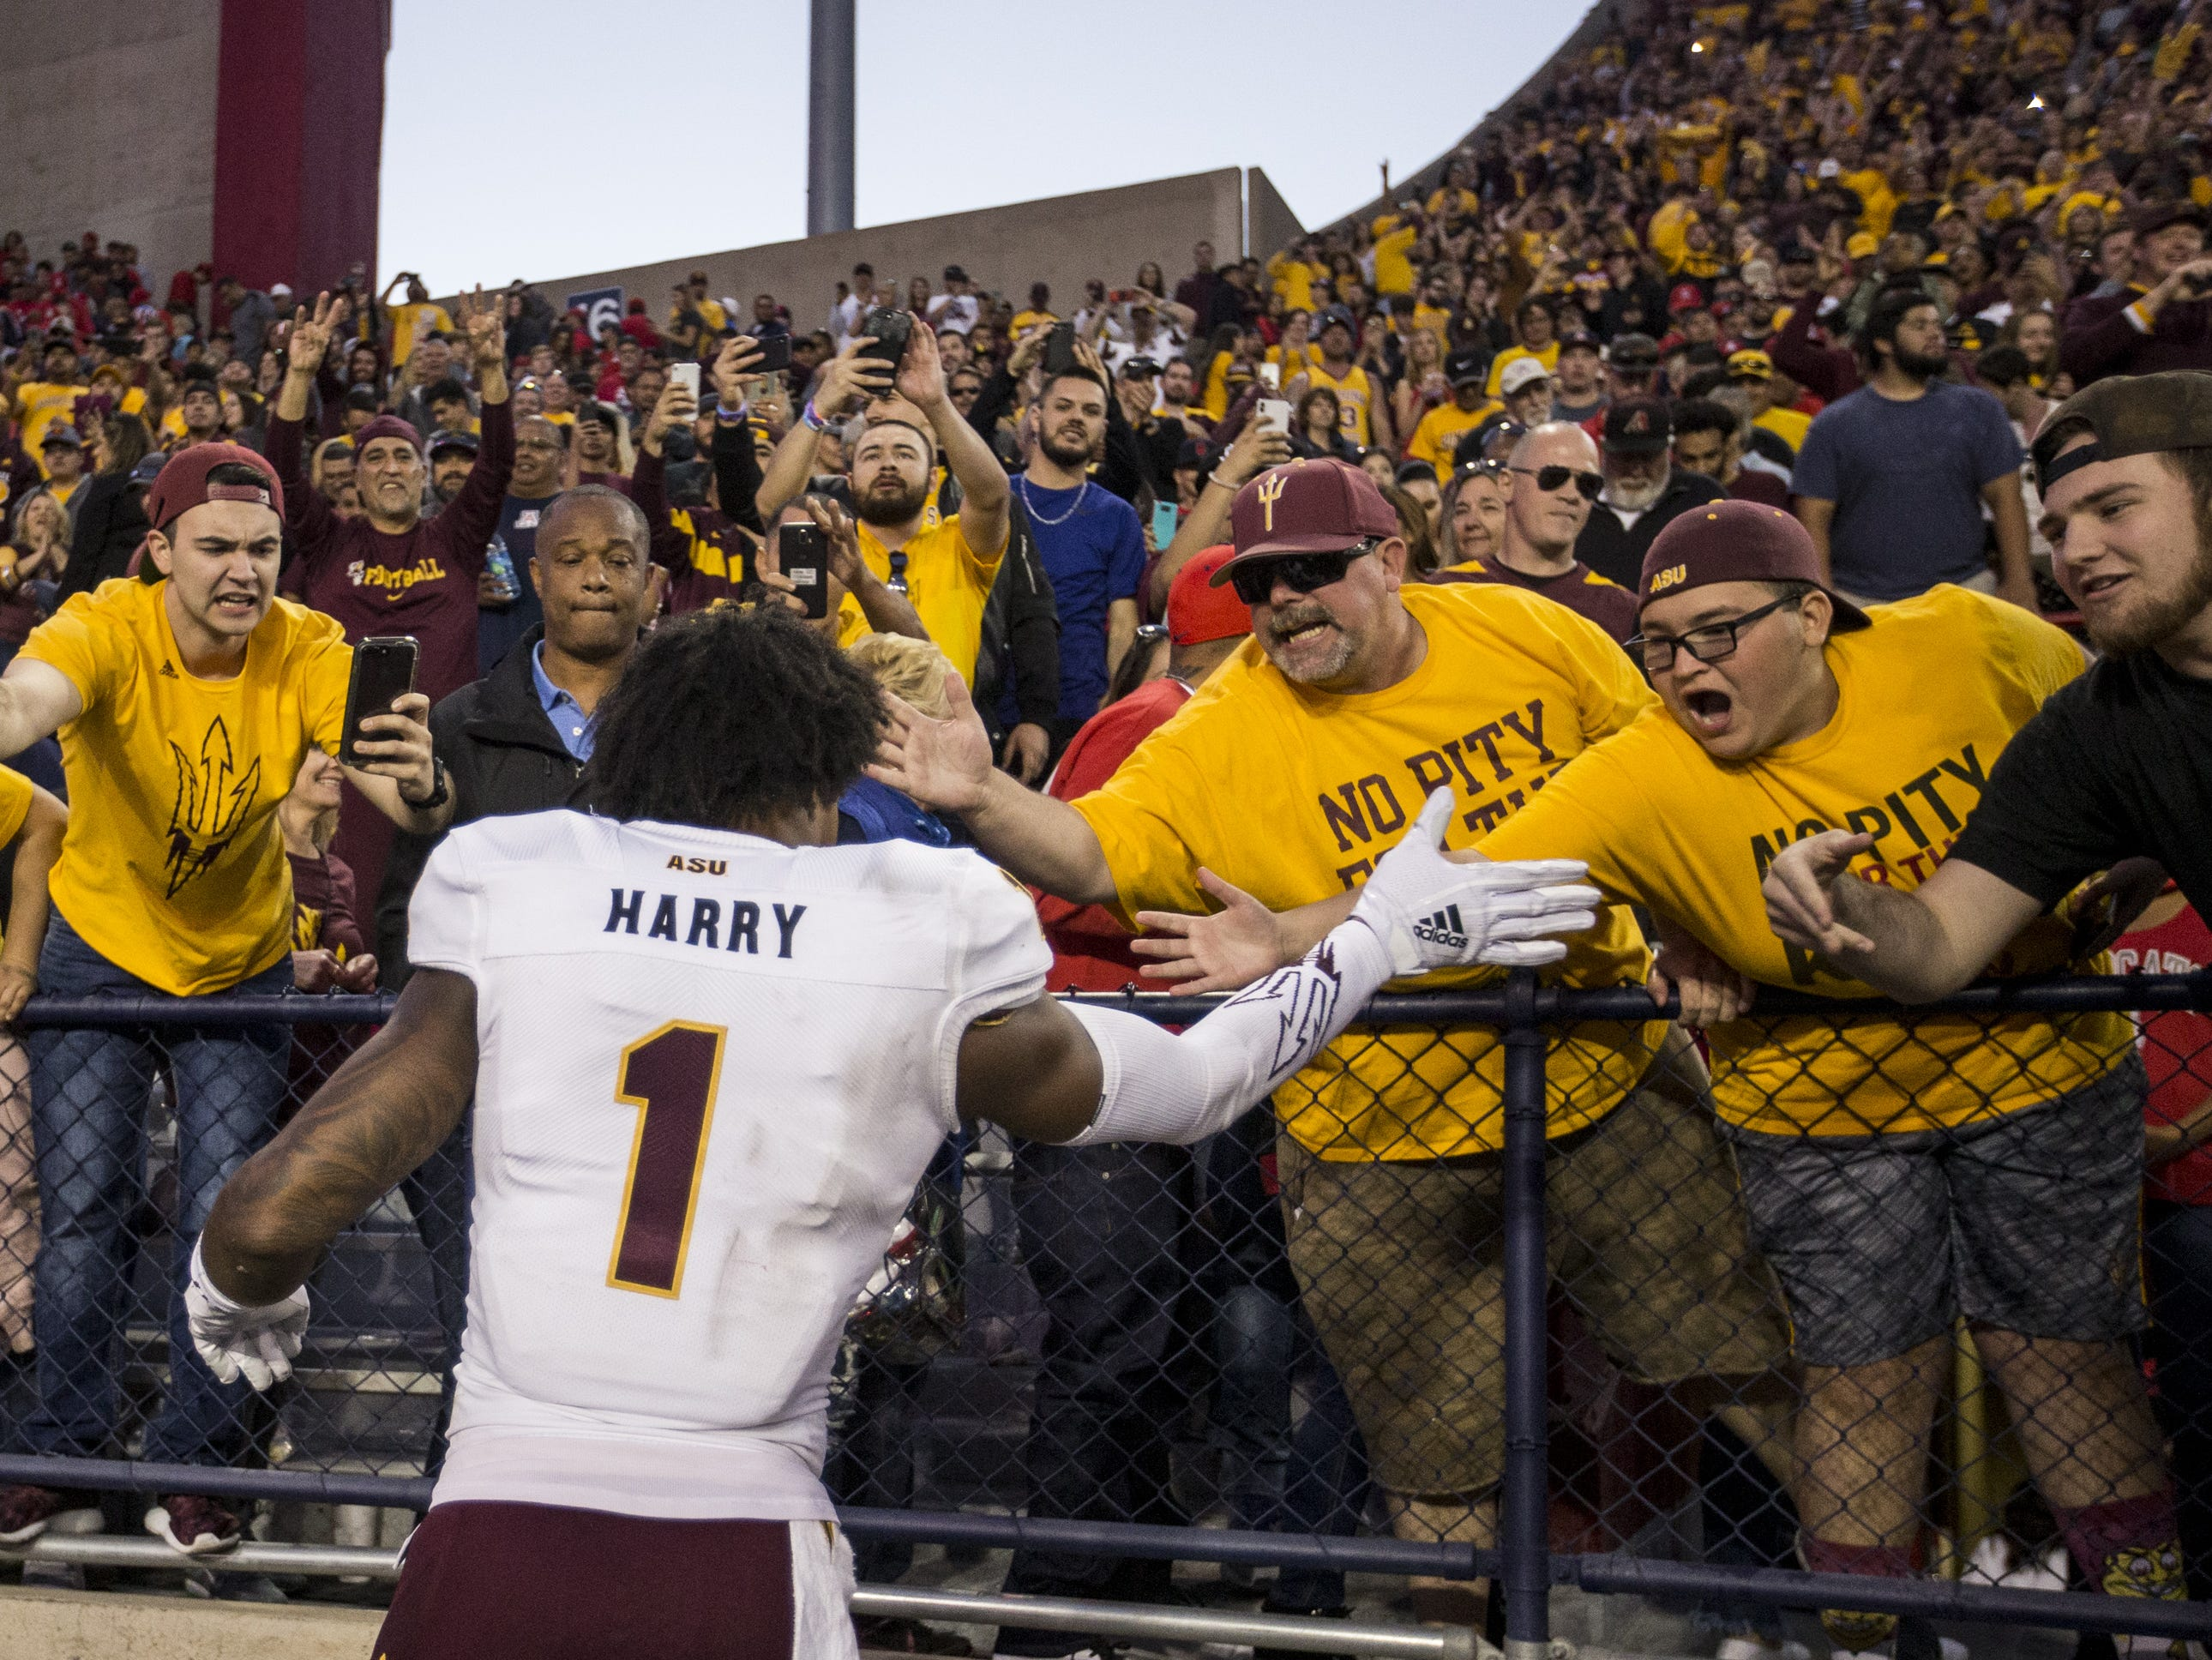 Arizona State's N'Keal Harry celebrates with fans after defeating Arizona for the Territorial Cup on Saturday, Nov. 24, 2018, at Arizona Stadium in Tucson, Ariz. Arizona State won, 41-40.